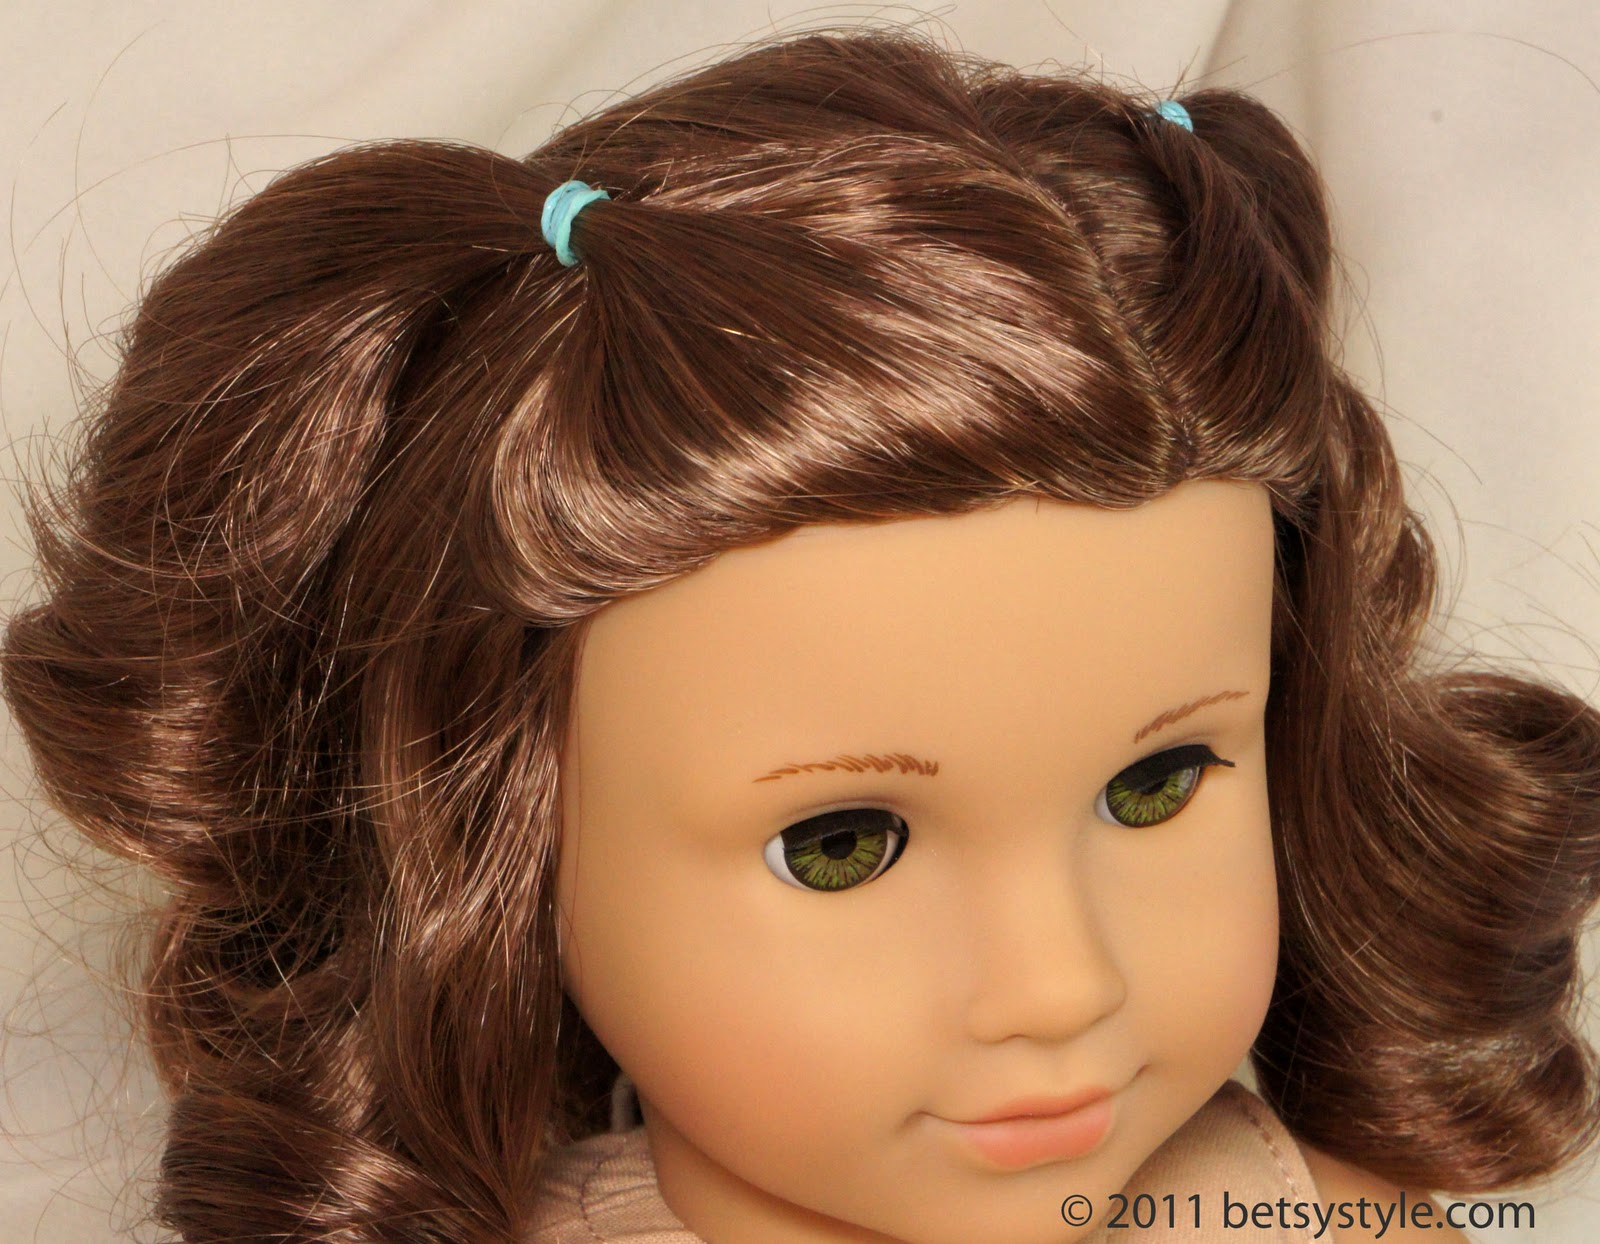 Hair Style Doll : how to style doll hair Computer Solutions